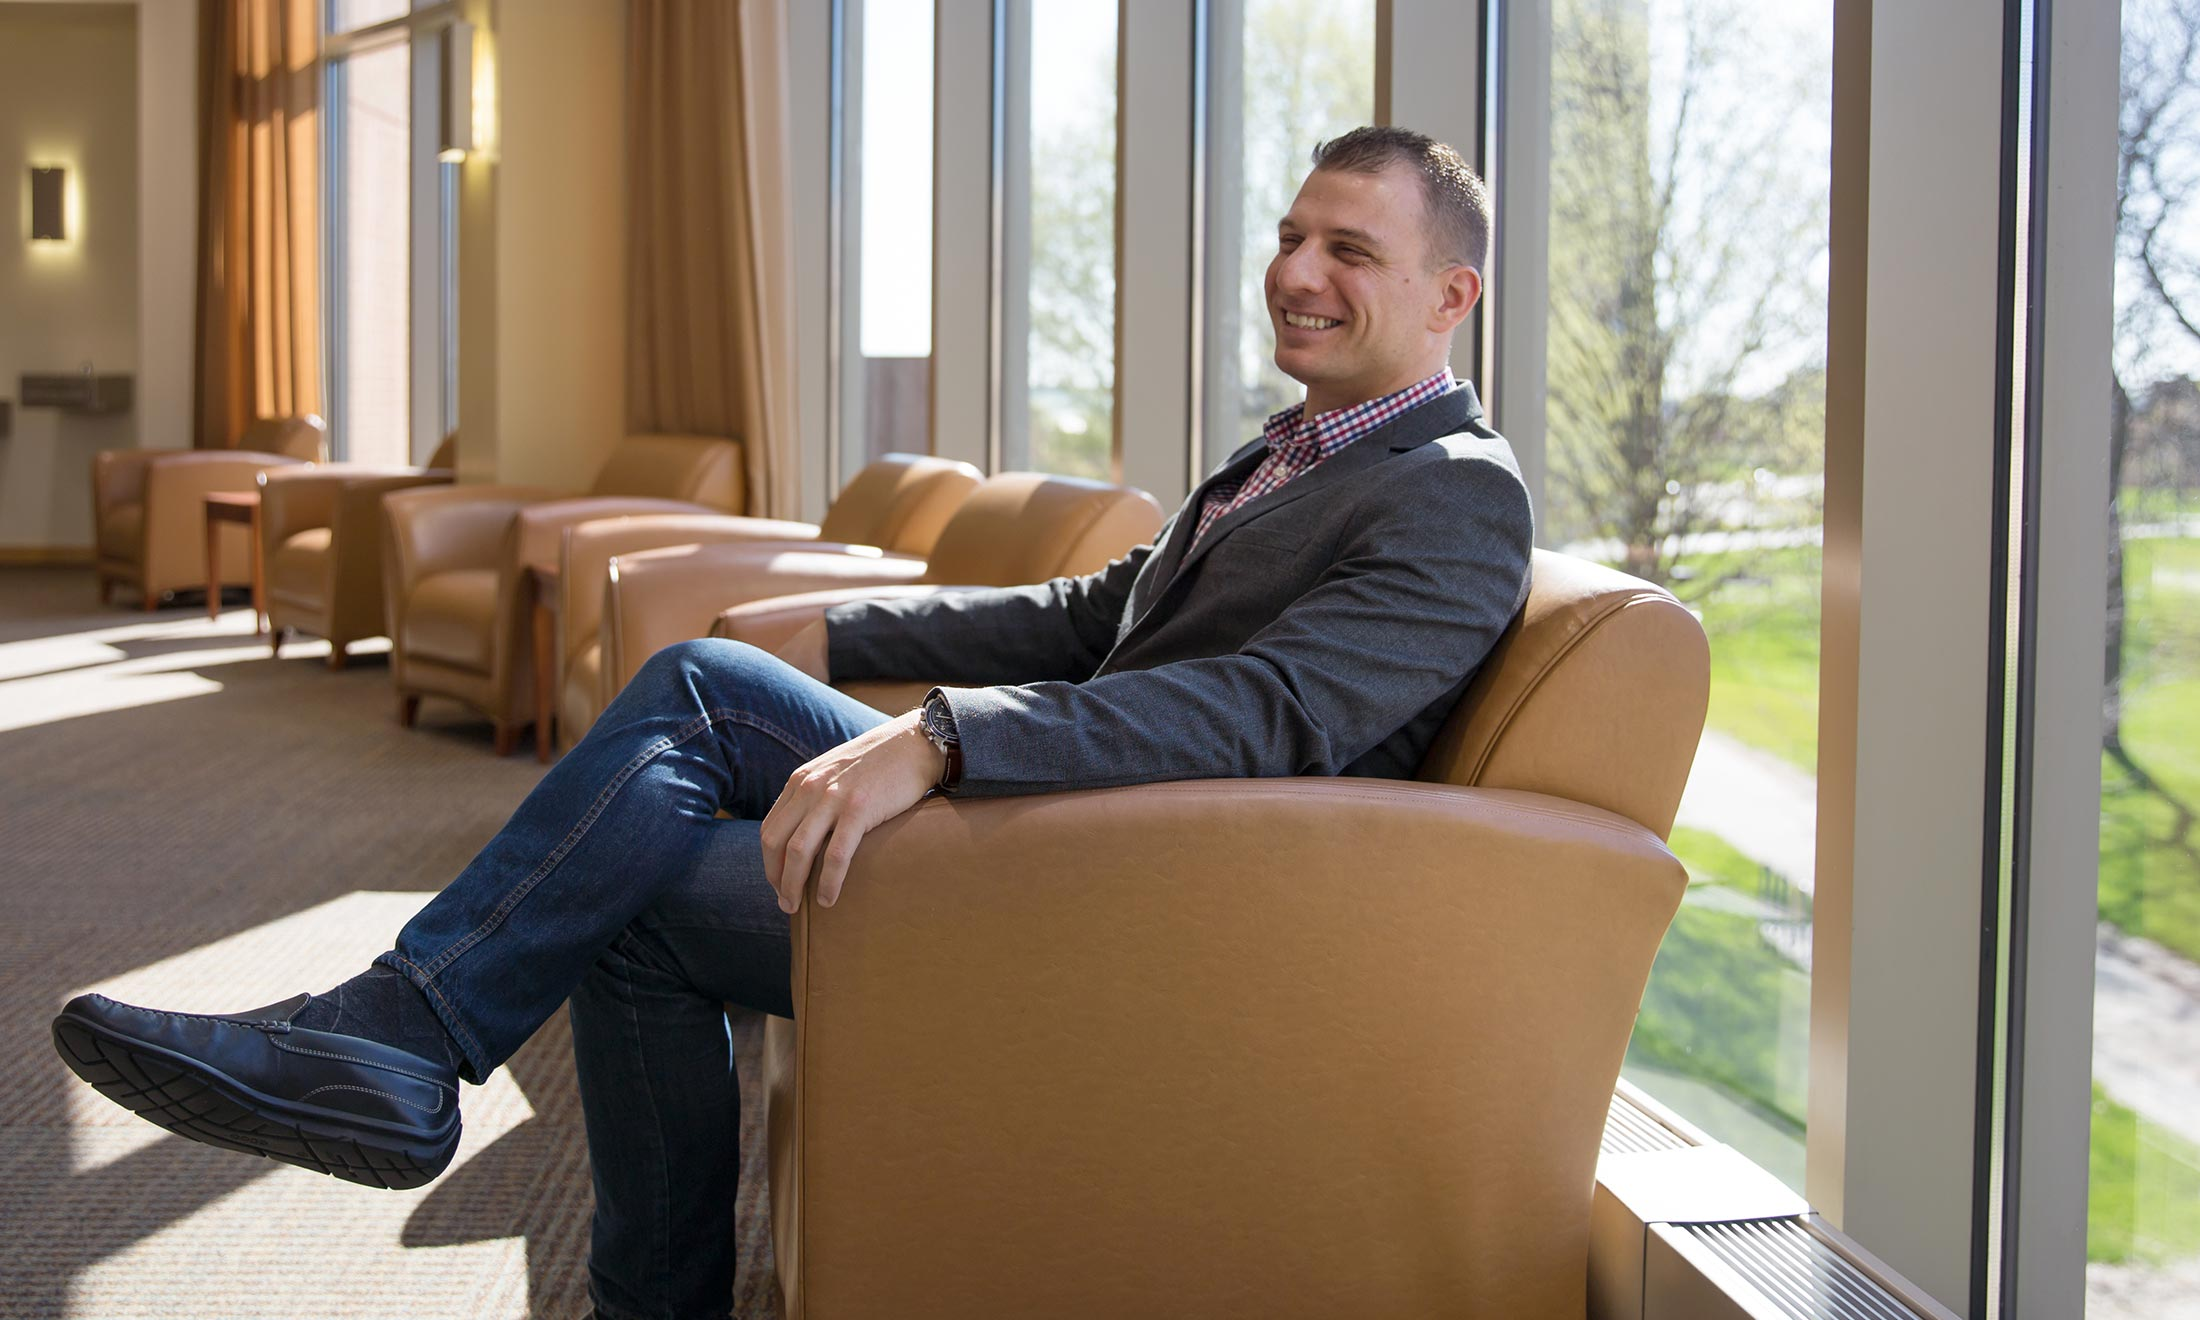 Oakland University graduate Sean Kosofsky sits in a chair inside the Oakland Center on campus